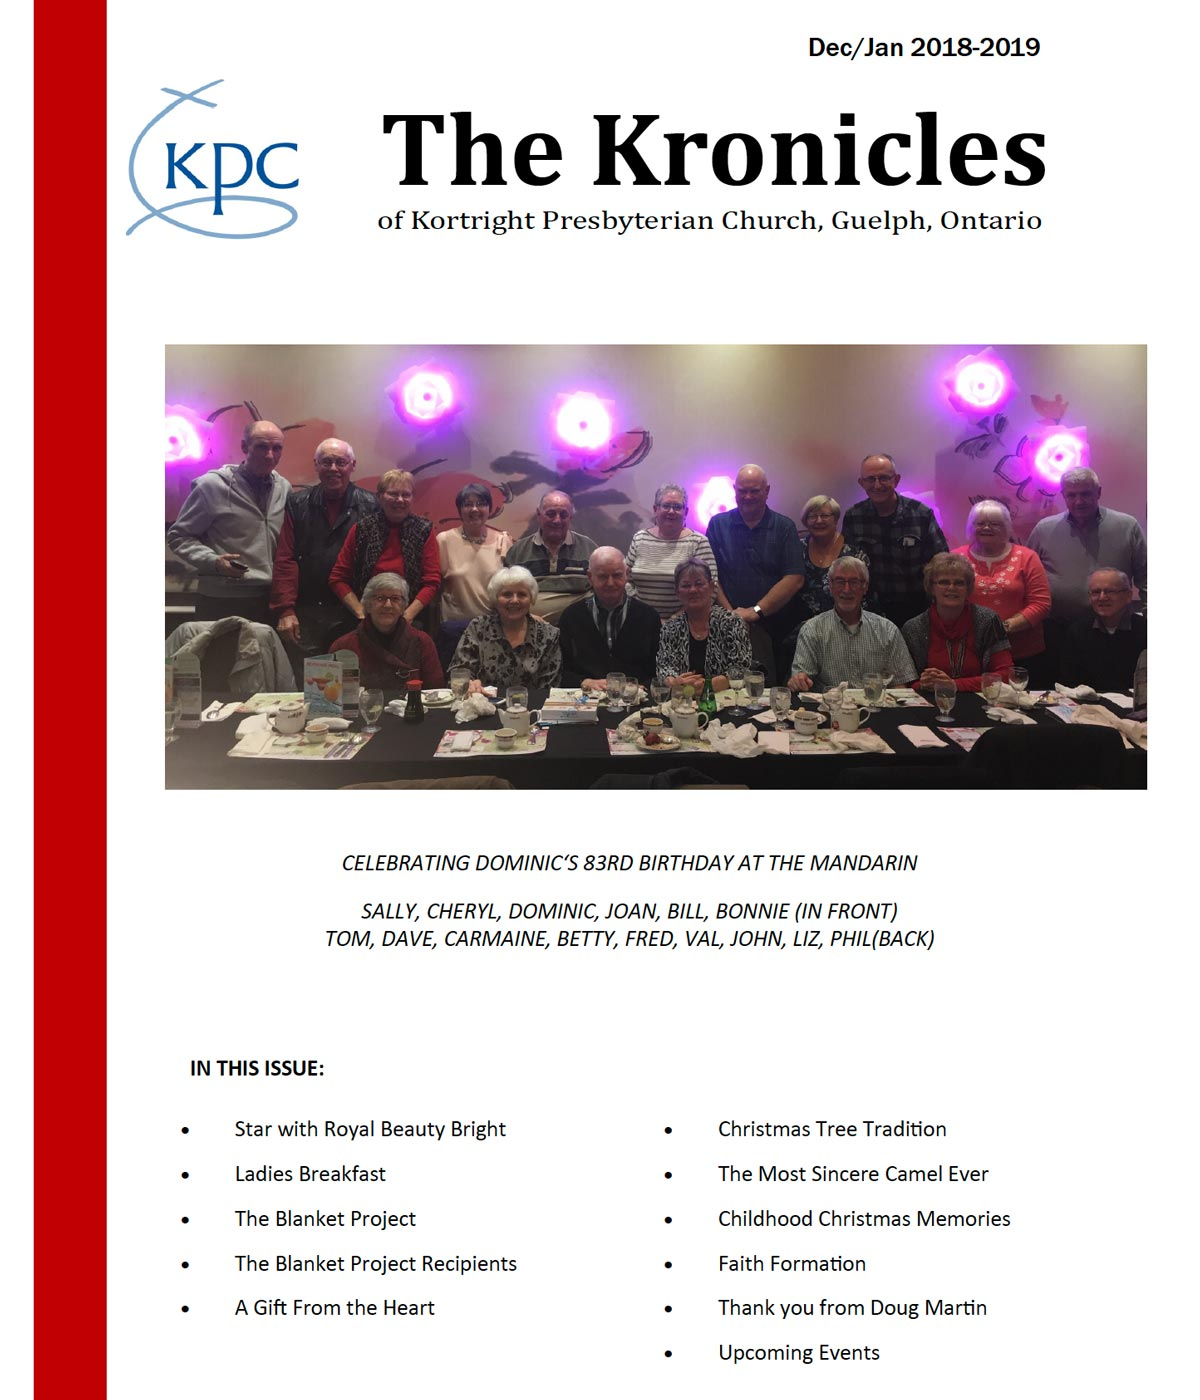 image of the front page of the Kortright Kronicles from December and January 2018-2019